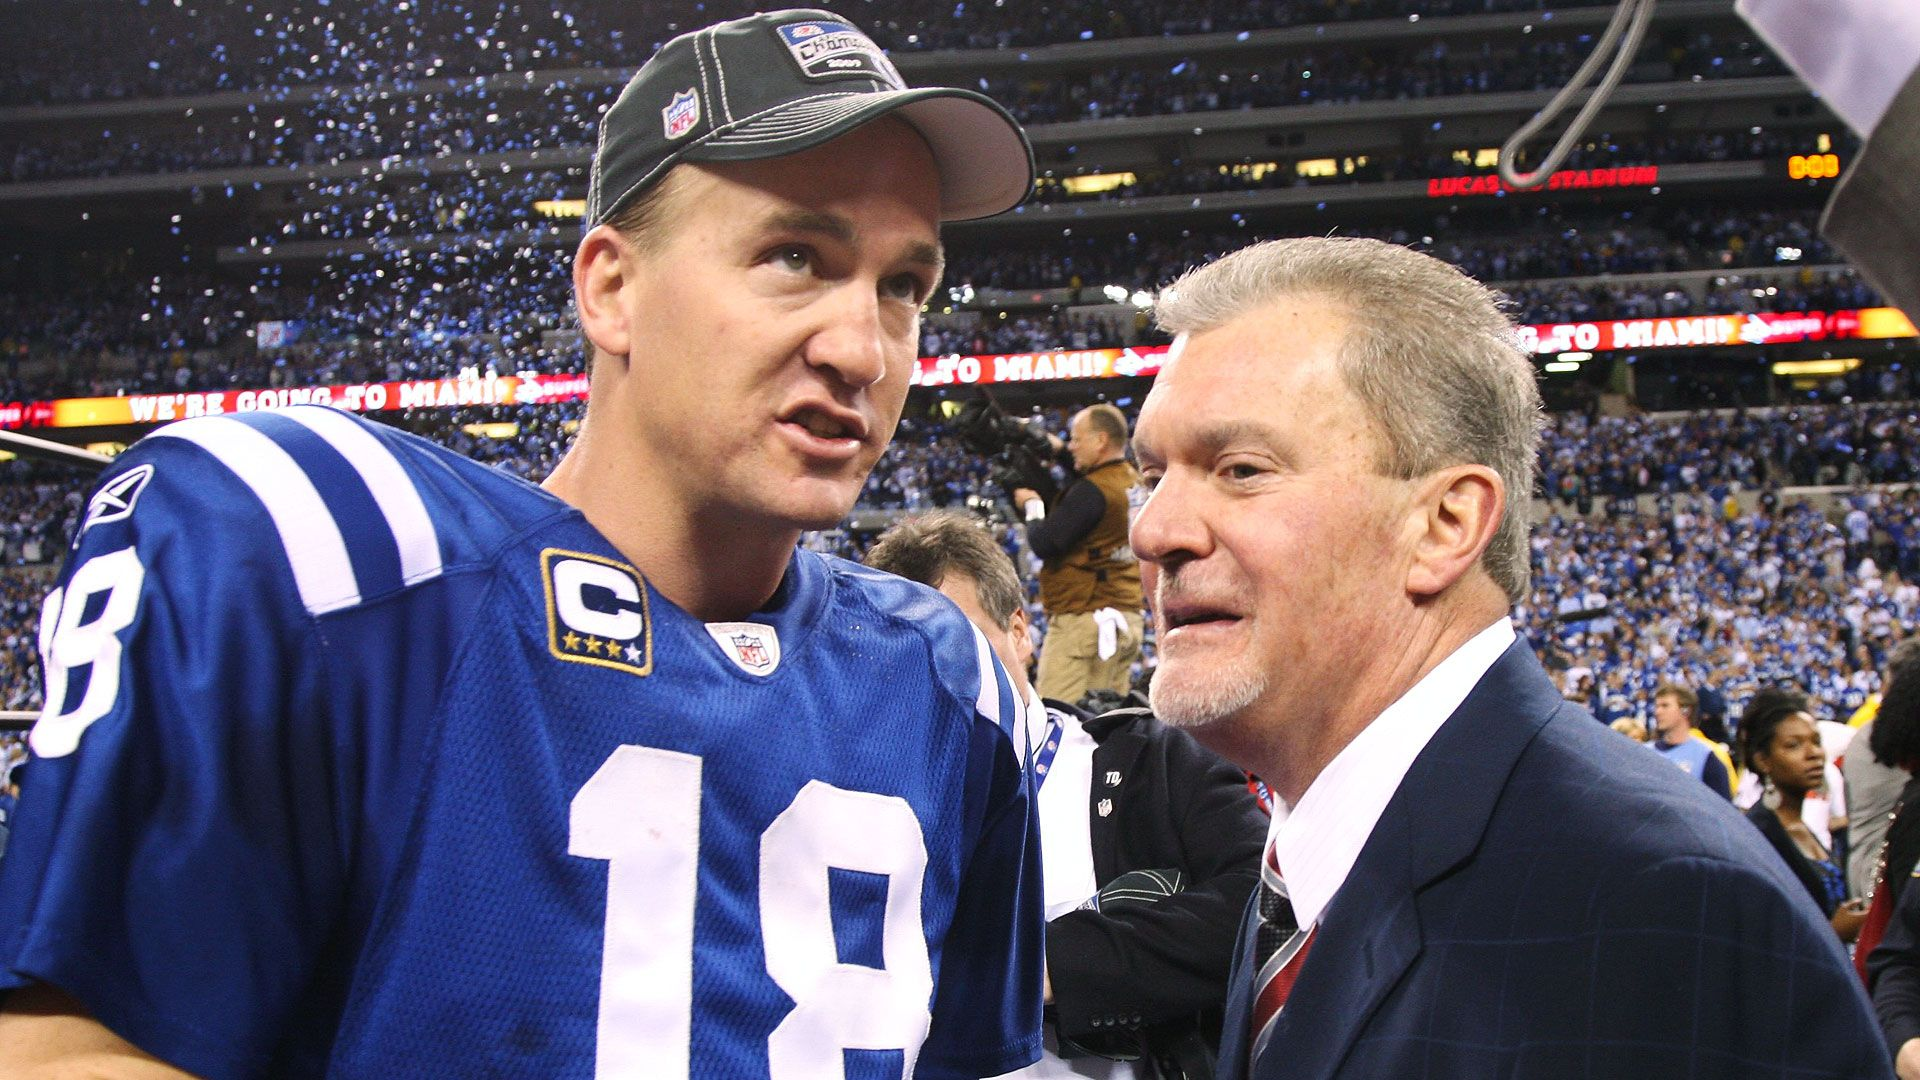 Peyton Manning makes call to retire after 18-year career